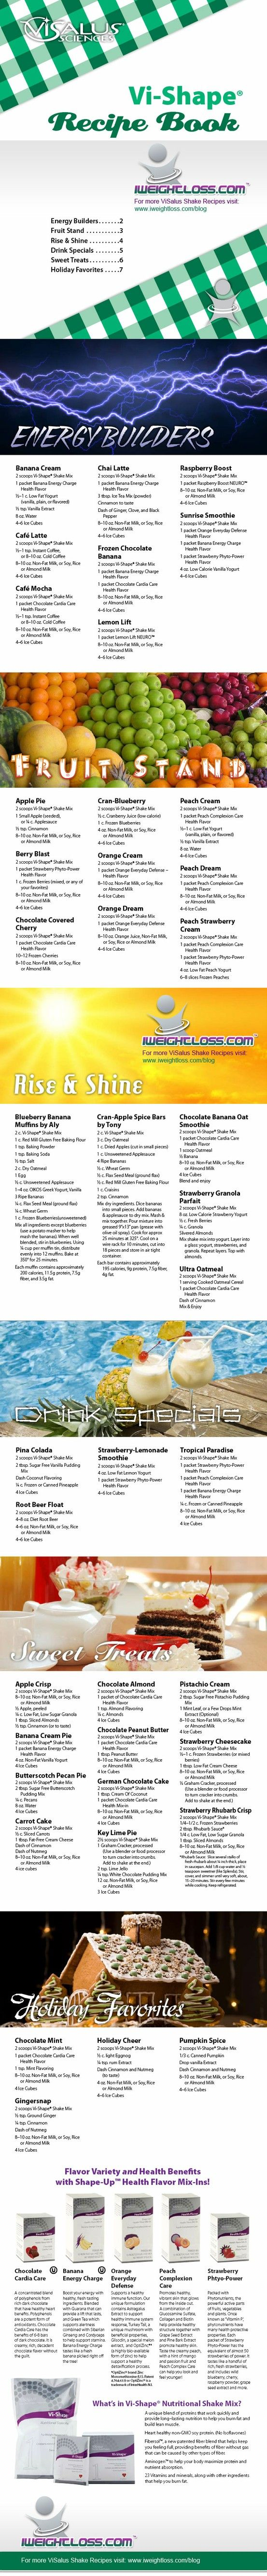 ViSalus Shakes Recipe Book... I don't drink this brand of protein powder, but I figure these recipes will work well with my designer whey!